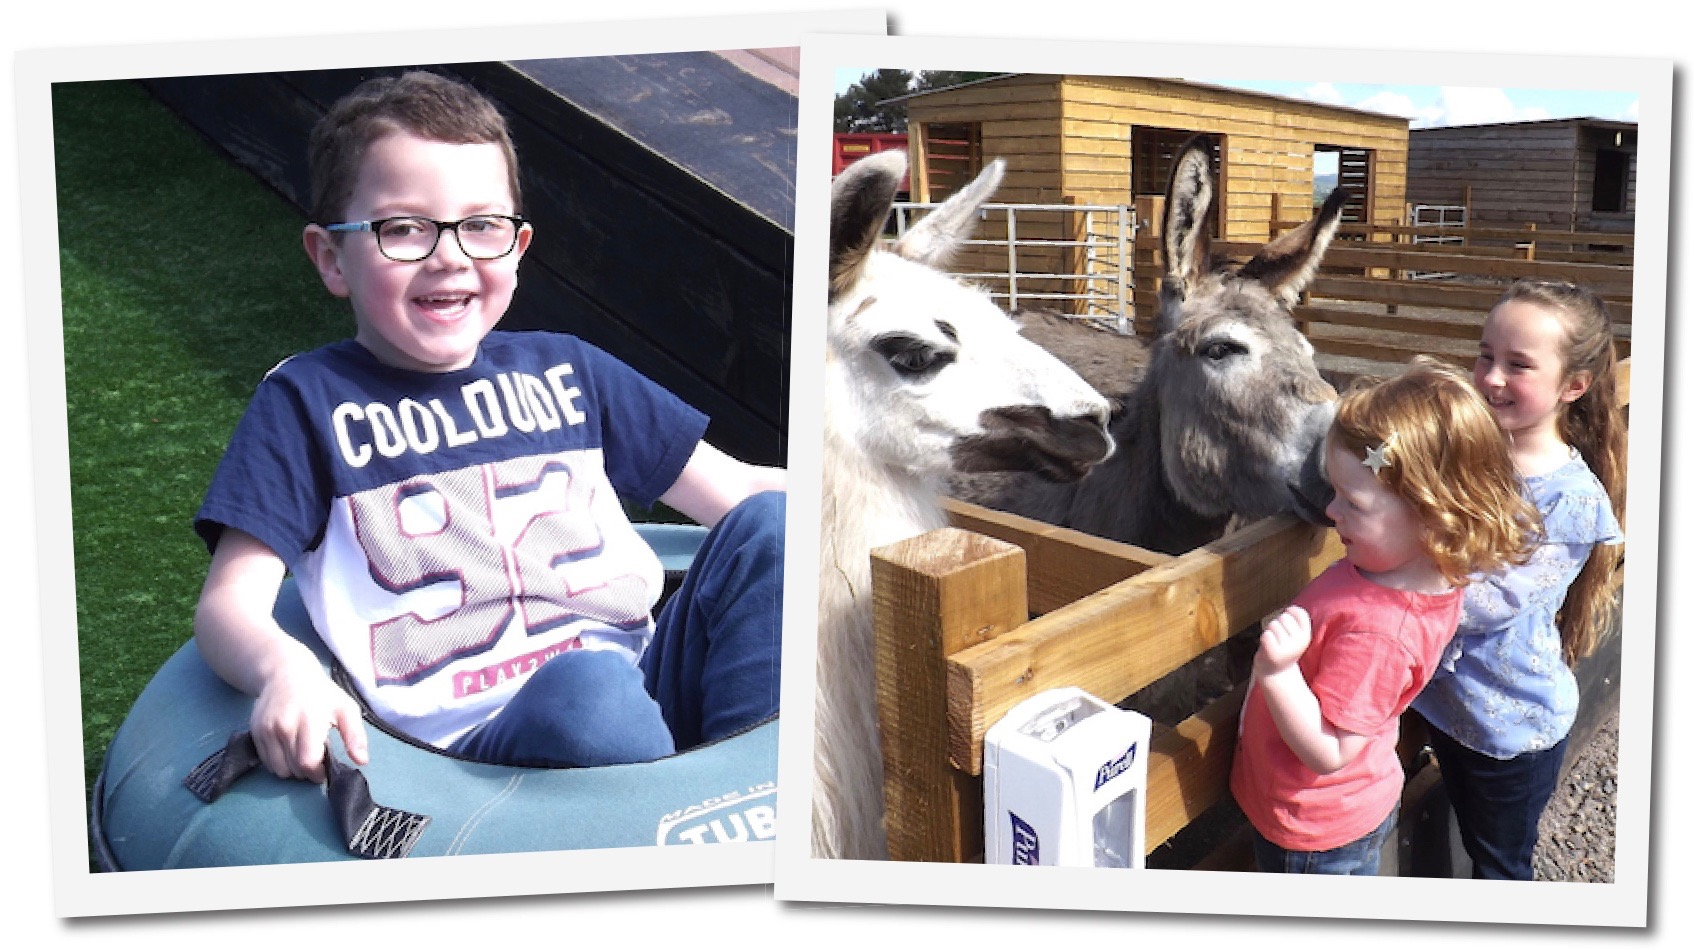 Alpine slide and animals at Dalscone Farm Fun.